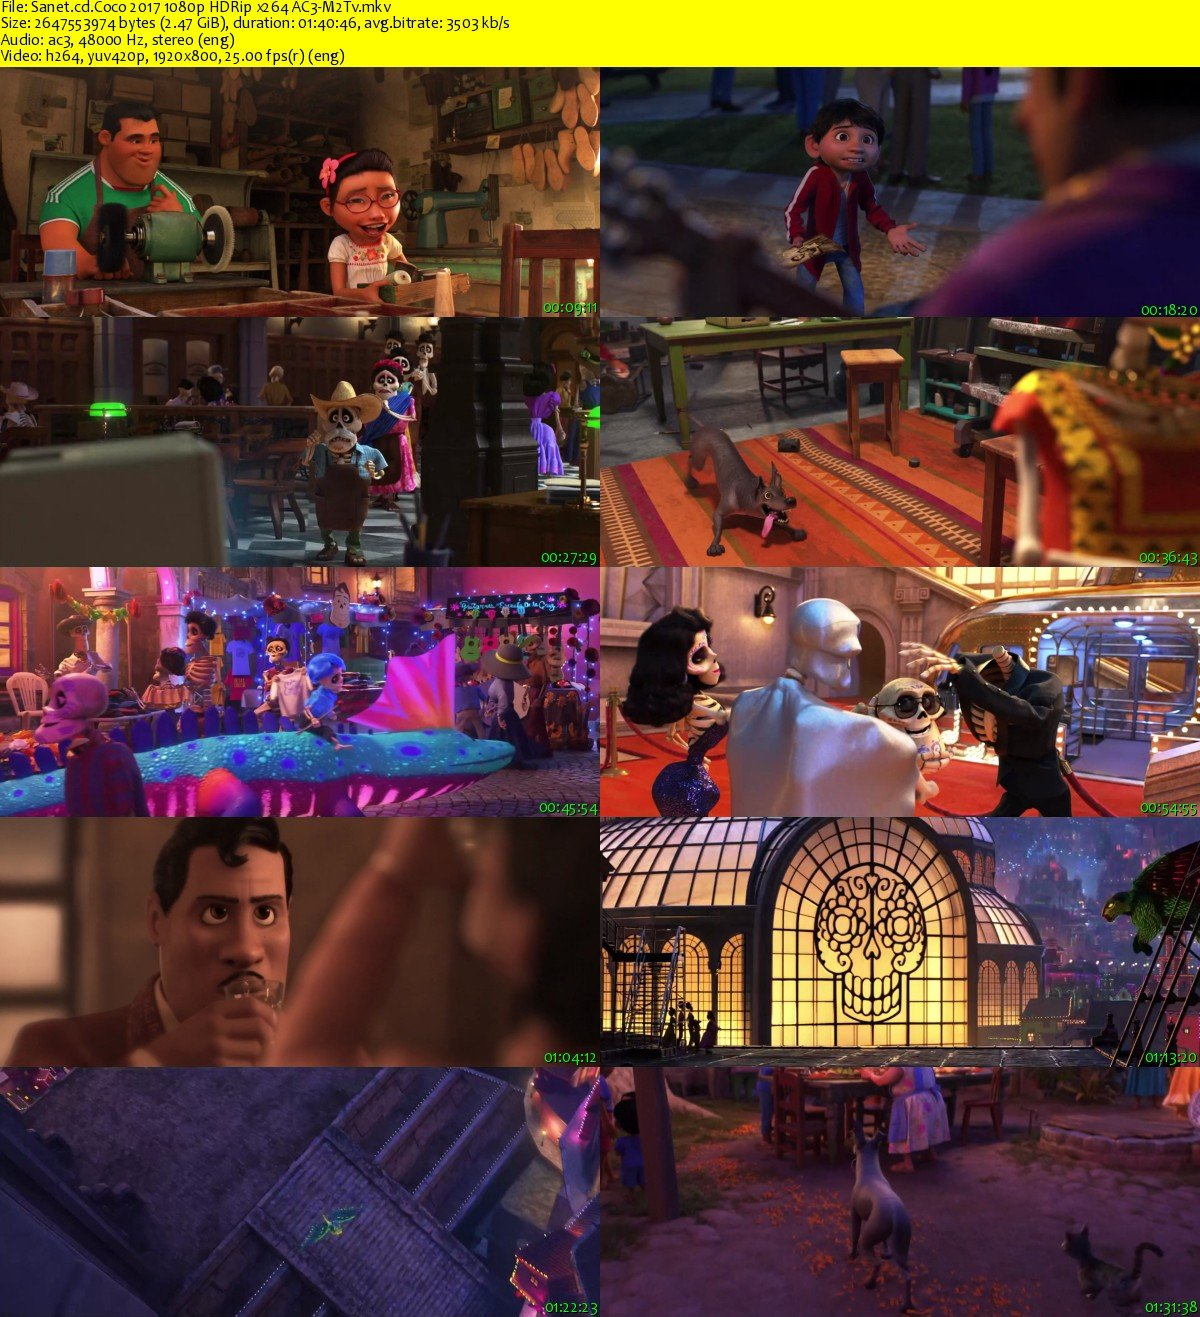 coco 2017 hdrip download